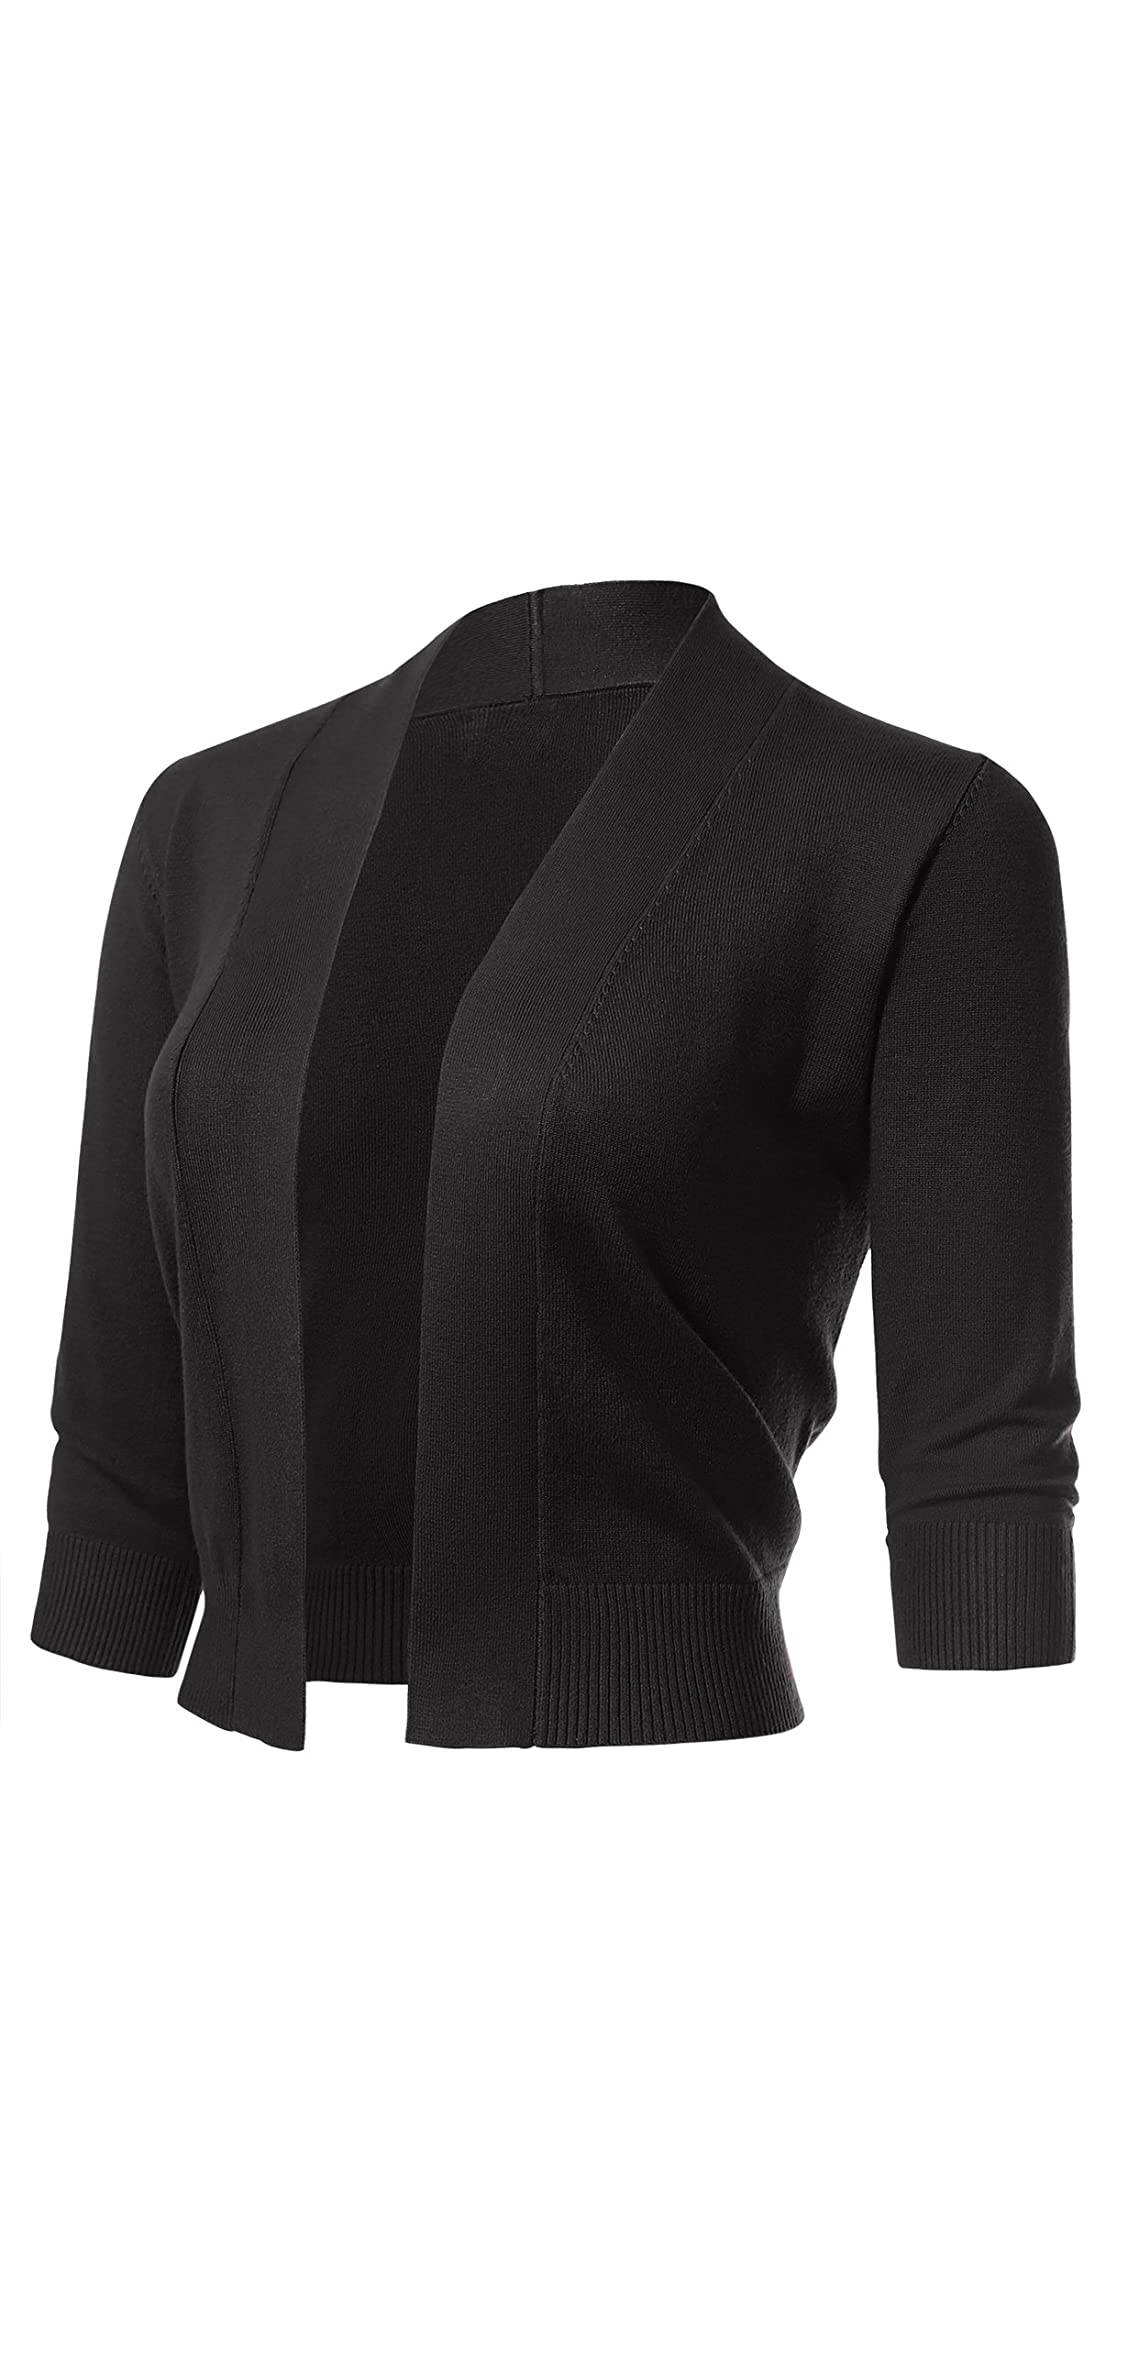 Women's Classic / Sleeve Open Front Cropped Cardigans S-xl